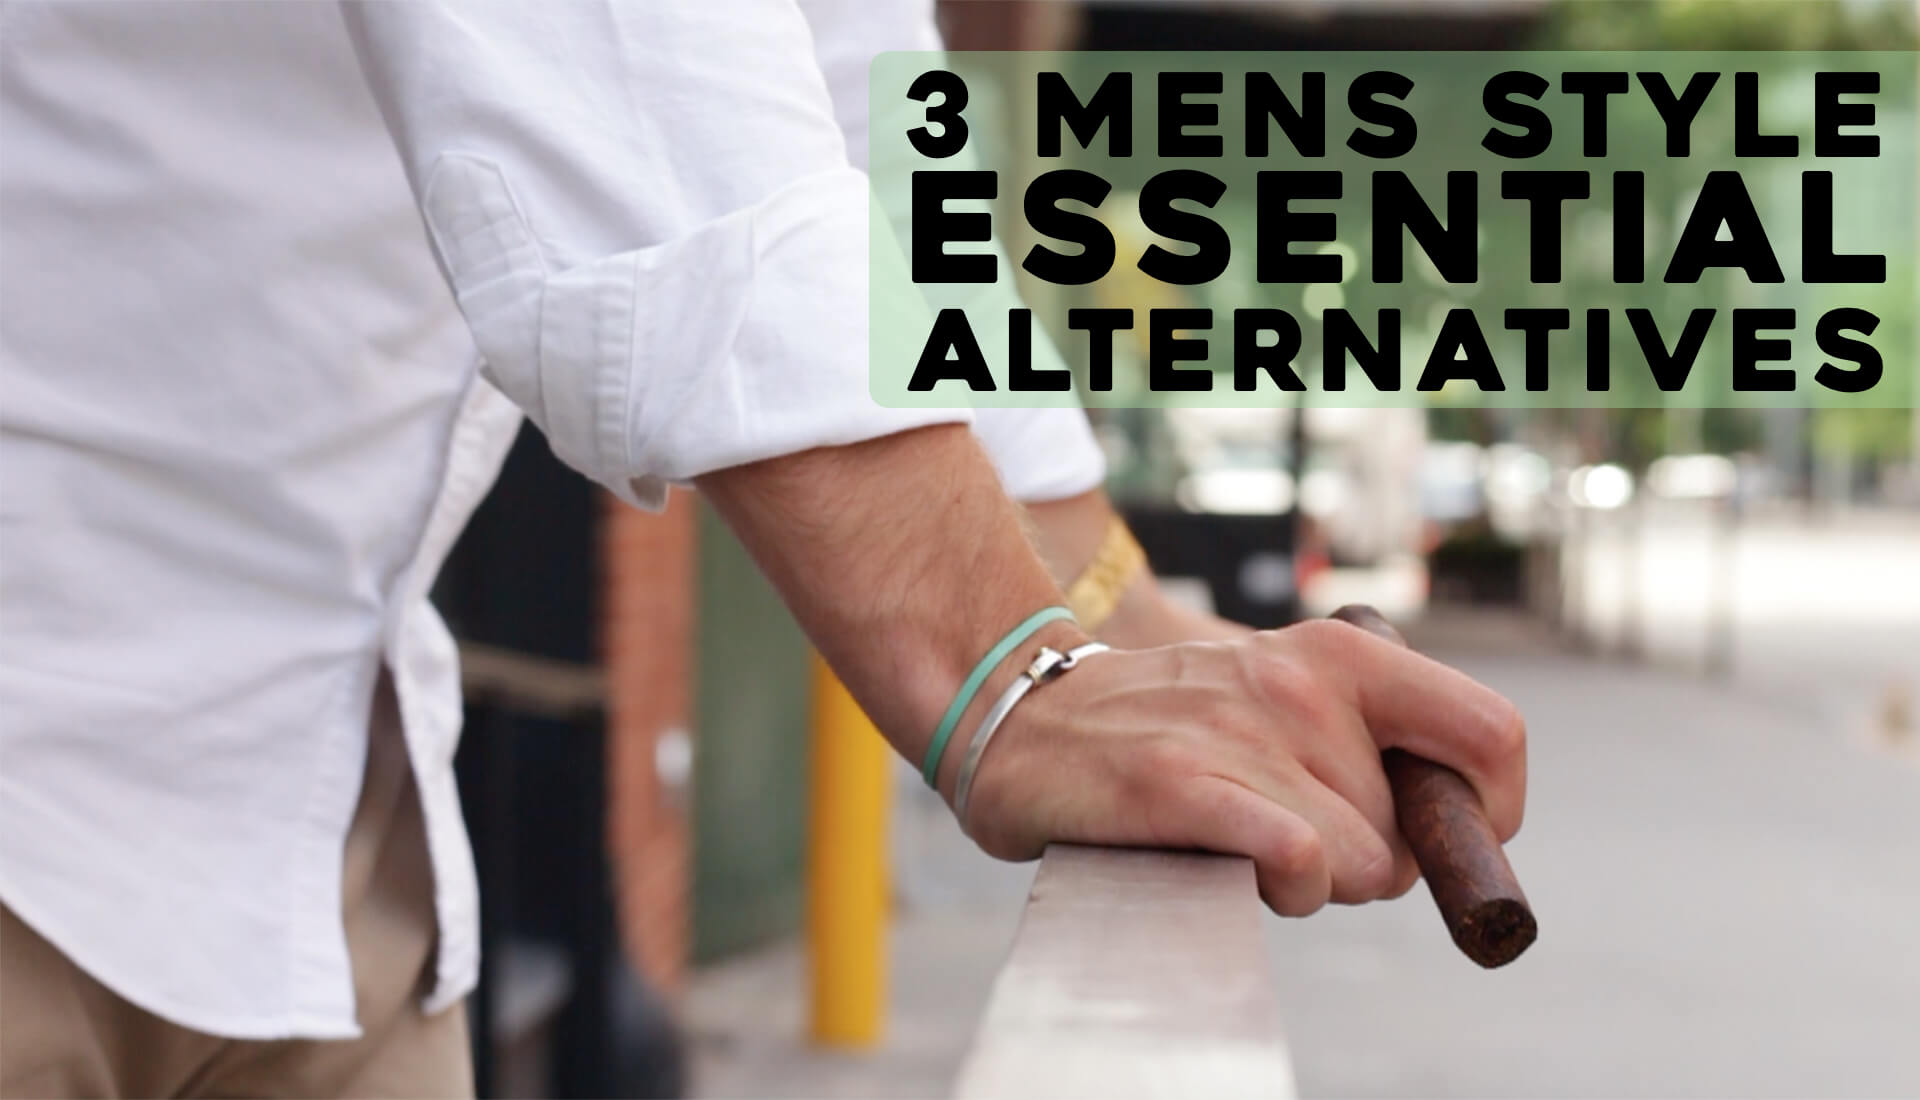 Off Topic: Top 3 Alternatives to Mens Lifestyle Essentials